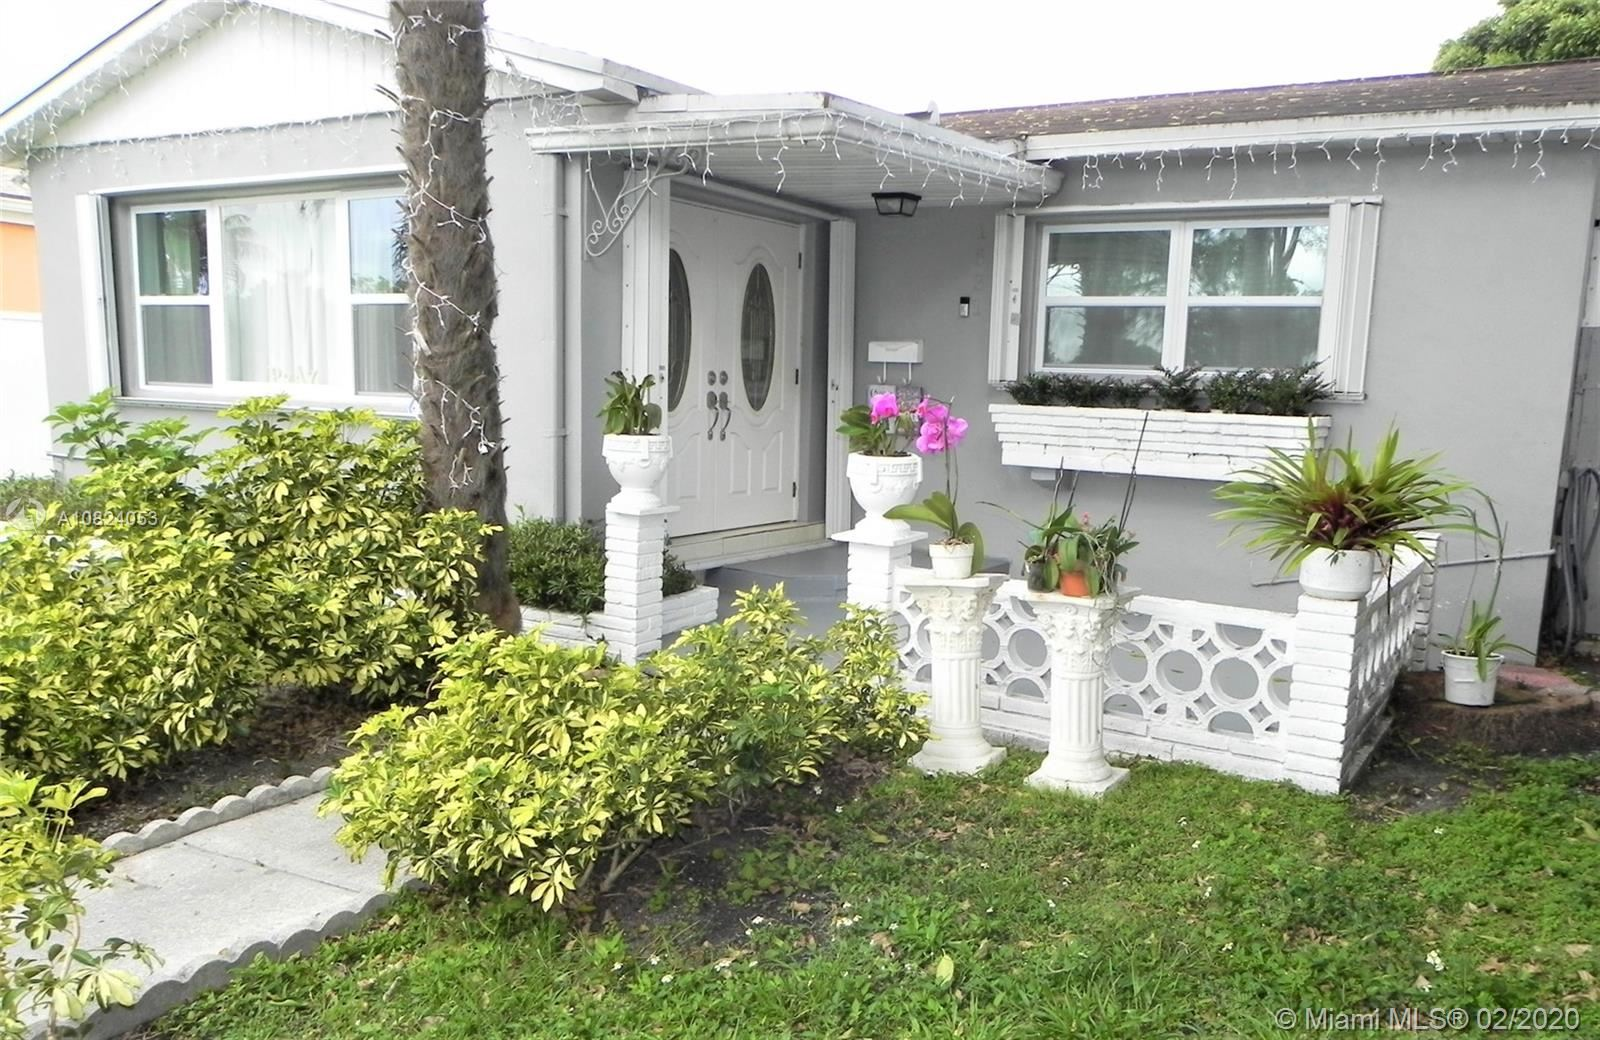 Photo 2 of Listing MLS a10824053 in 1531 Johnson St Hollywood FL 33020